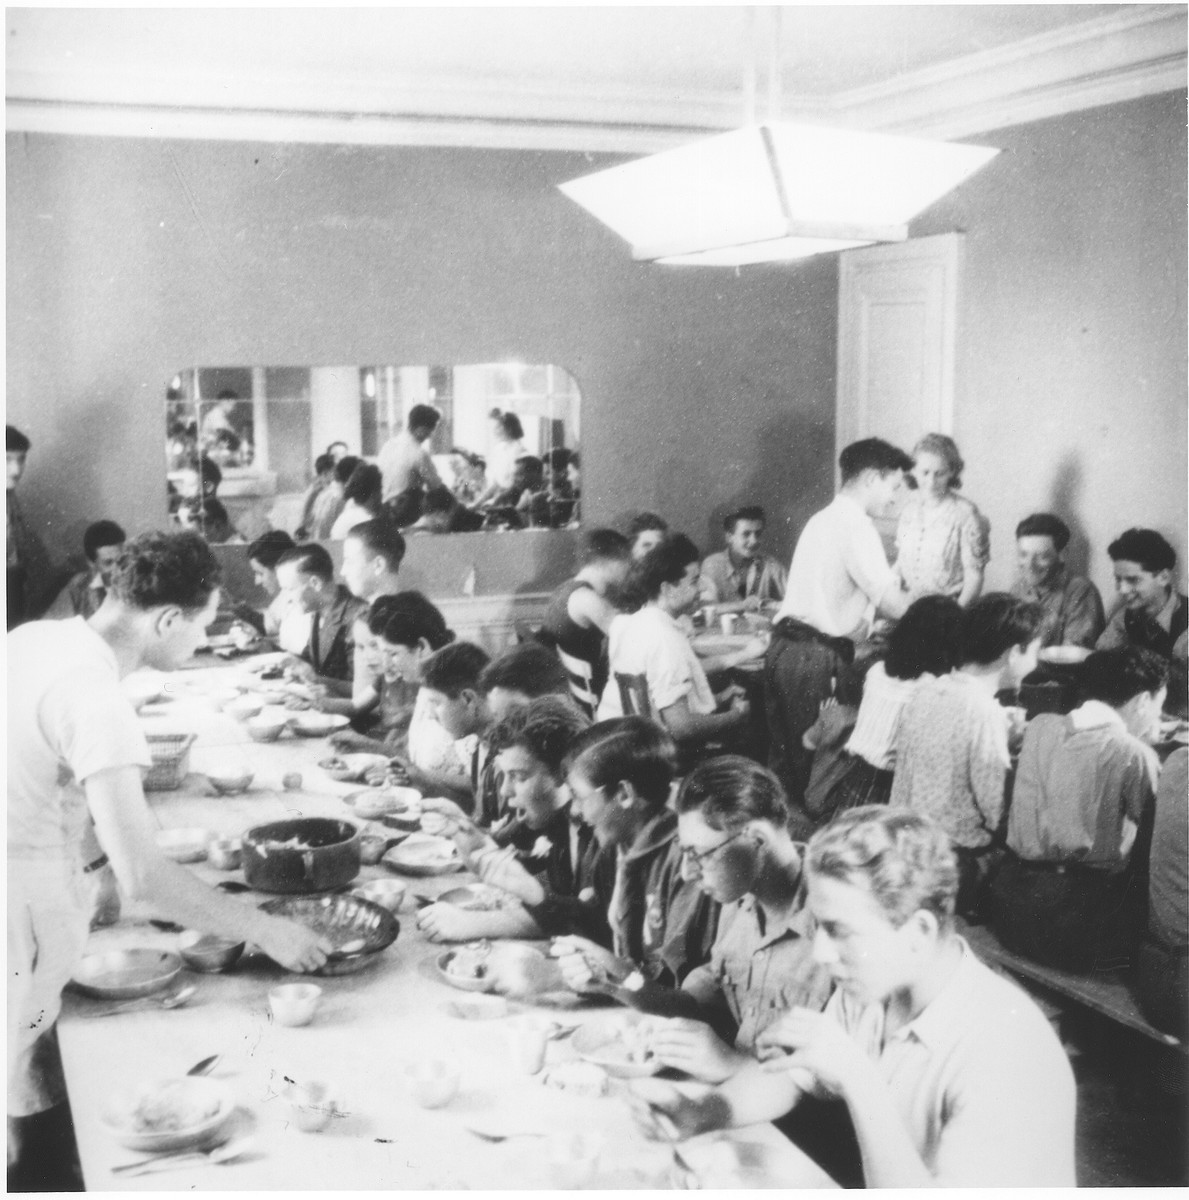 Boys eat dinner in the communal dining hall of the Collonges children's home.